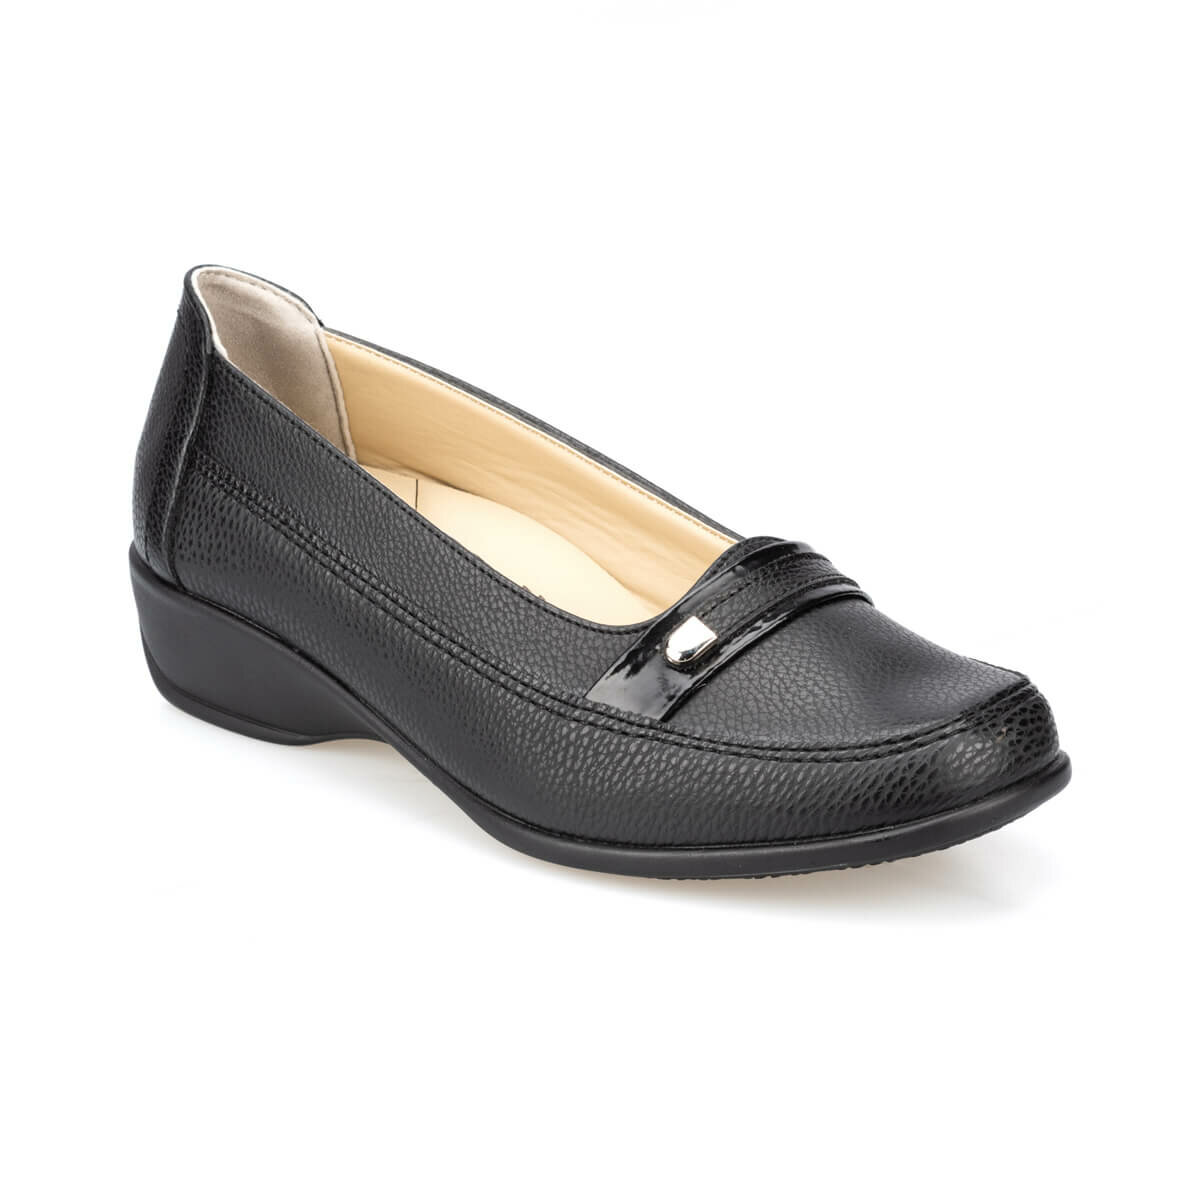 FLO 91. 111002.Z Black Women Shoes Polaris 5 Point